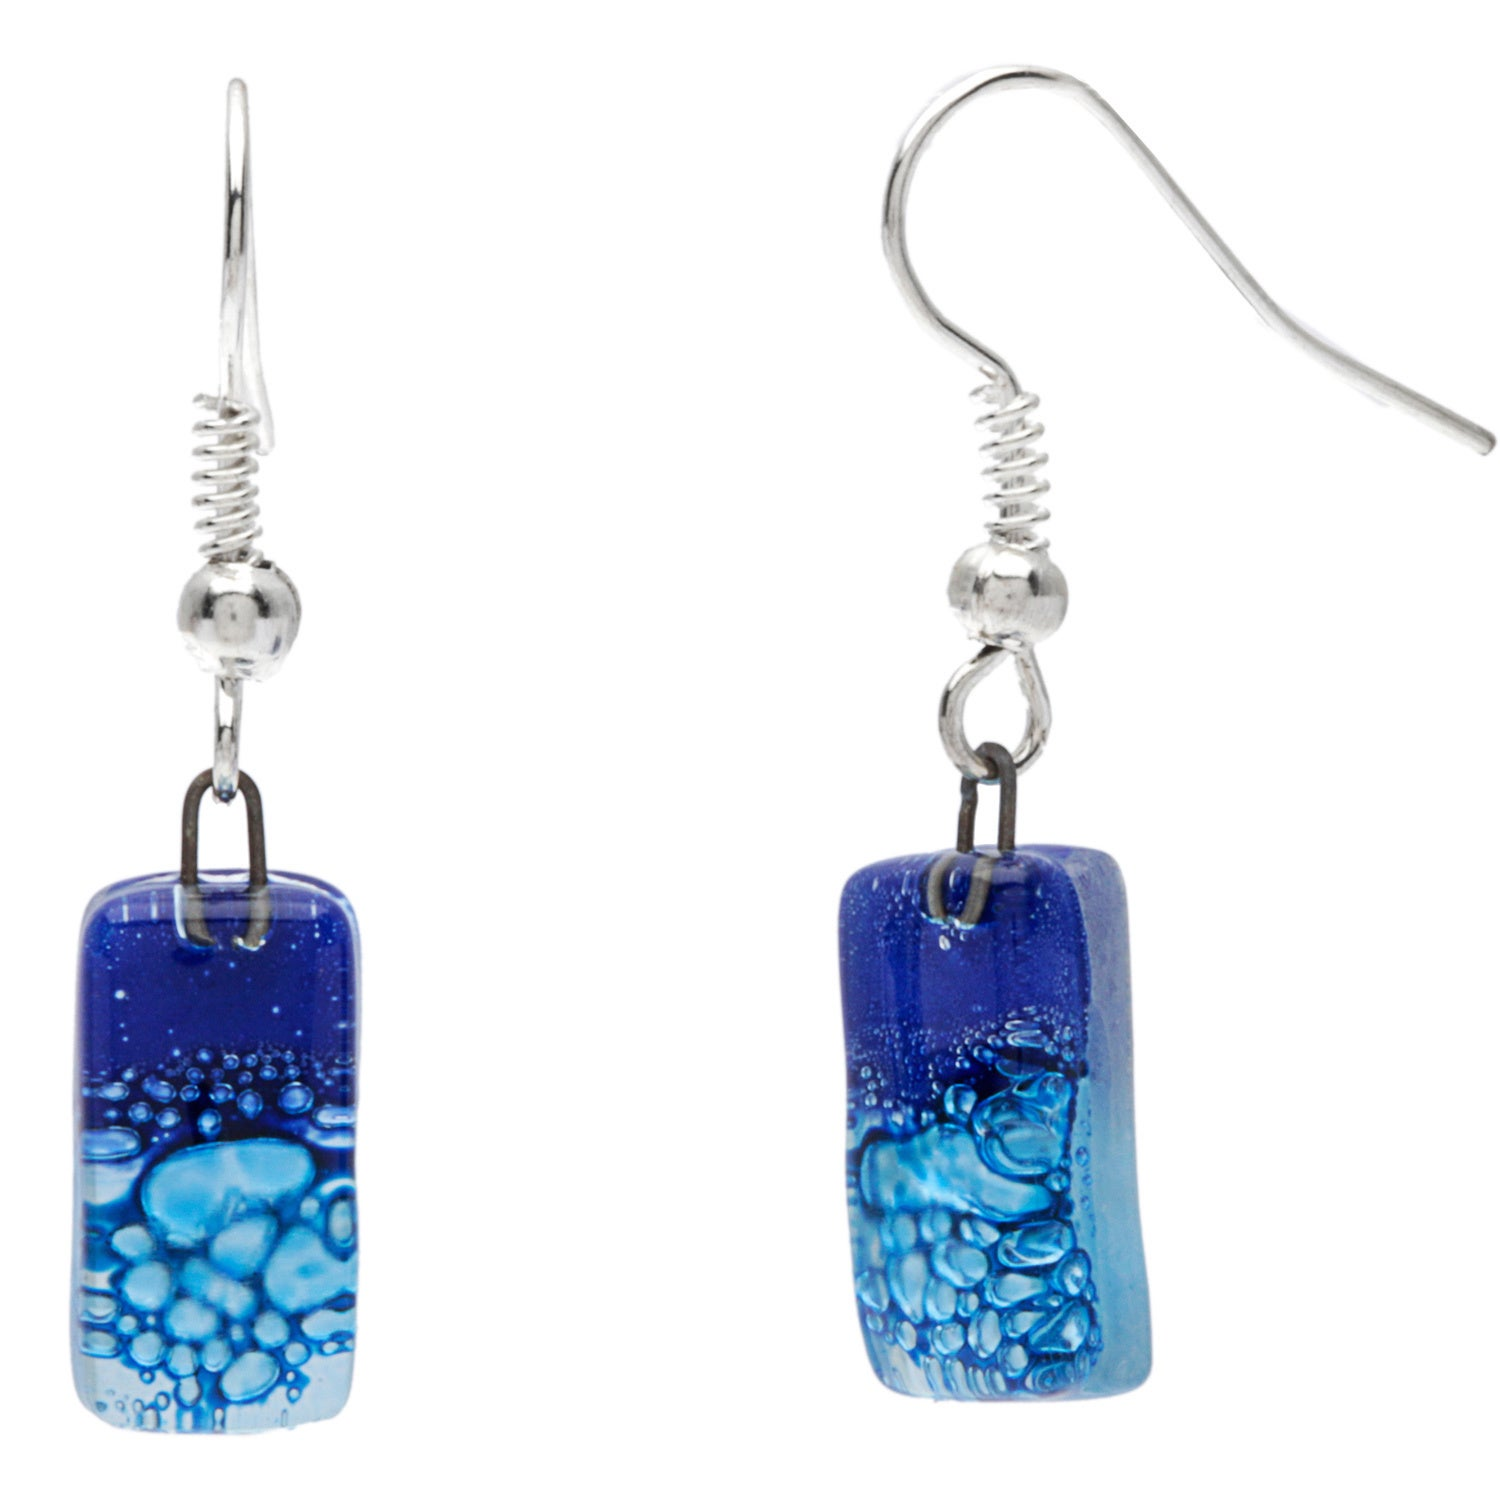 bristol earrings blue museums company products shop stud drop glass